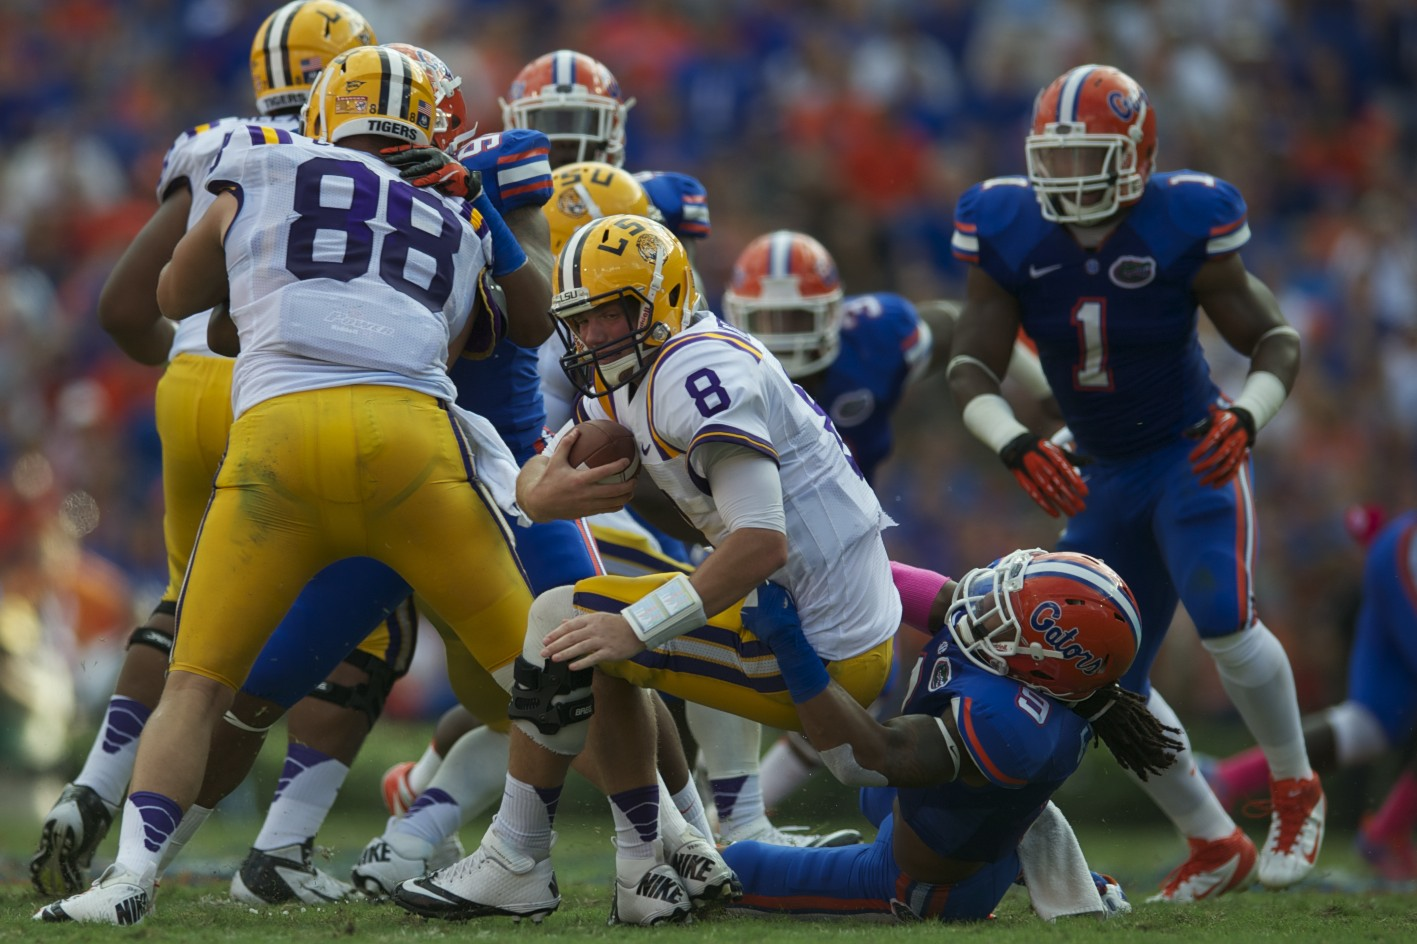 Florida's Josh Evans sacks LSu quarterback Zach Mettenberger in the second half of Saturday's game.